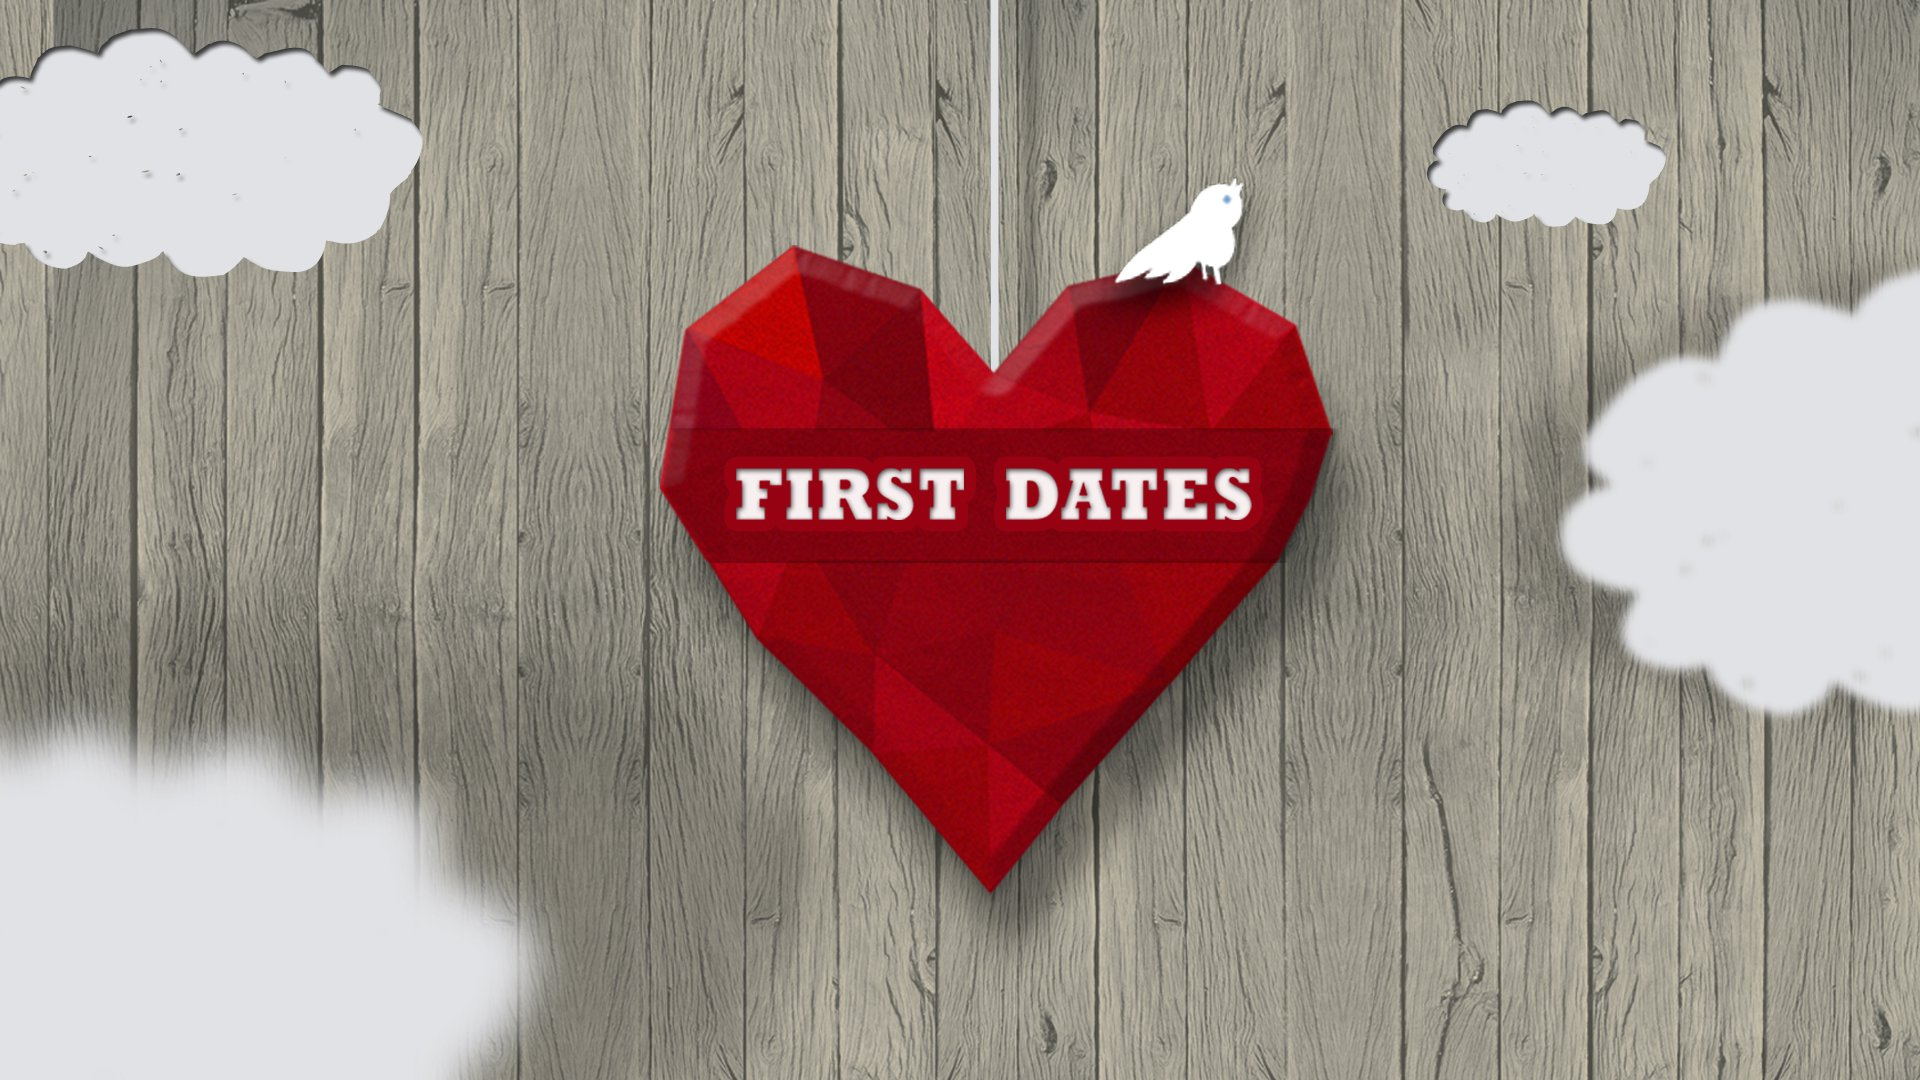 what day is first dates on